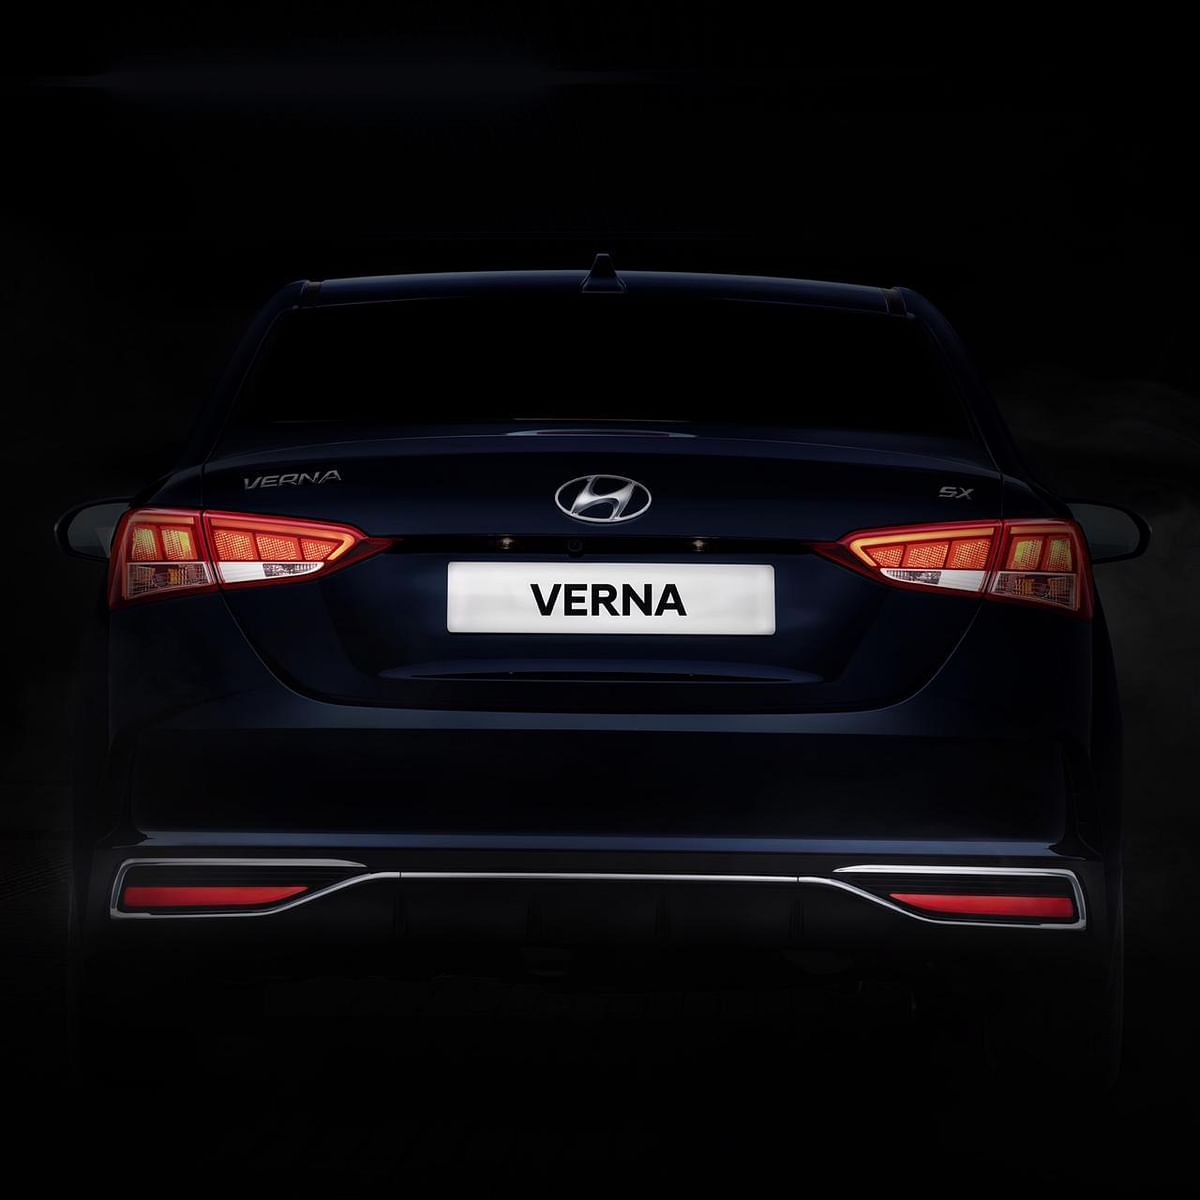 The 2020 Hyundai Verna gets a revised rear bumper and new LED tail-lamps.